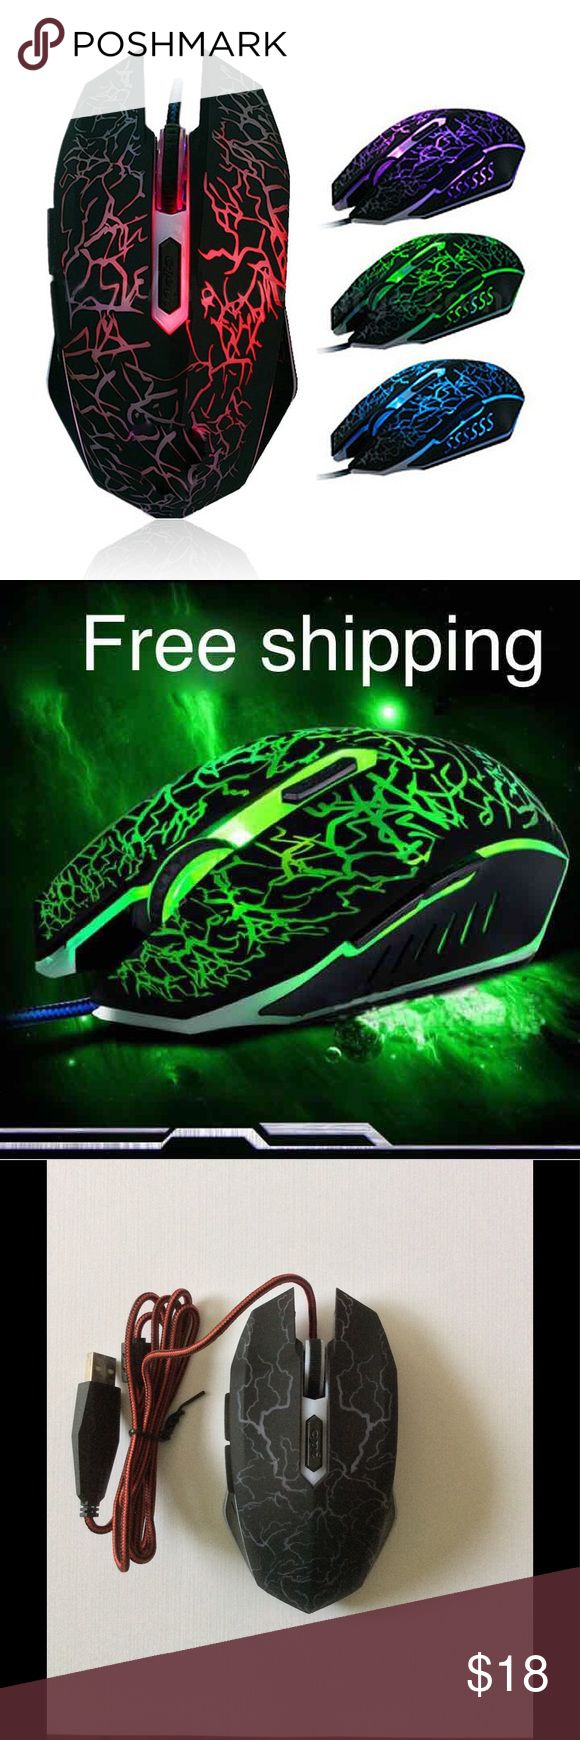 LED Backlight 4000 DPI Optical Gaming Mouse New 100% brand new and high quality. Buttons: 6 buttons with scroll wheel. Tracking systems: Optical. The Max DPI: 4000DPI. Adjustable DPI Switch: 1200/2500/3200DPI/4000DPI. Ultra-precise Scroll Wheel. Optical technology works on most surfaces.Ergonomically designed, long-term use without fatigue. Intelligent connectivity, no need to code, plug & play.  Compatible for Windows XP, for Vista, for Windows 7, for ME, 2000 and for Mac OS...or latest…